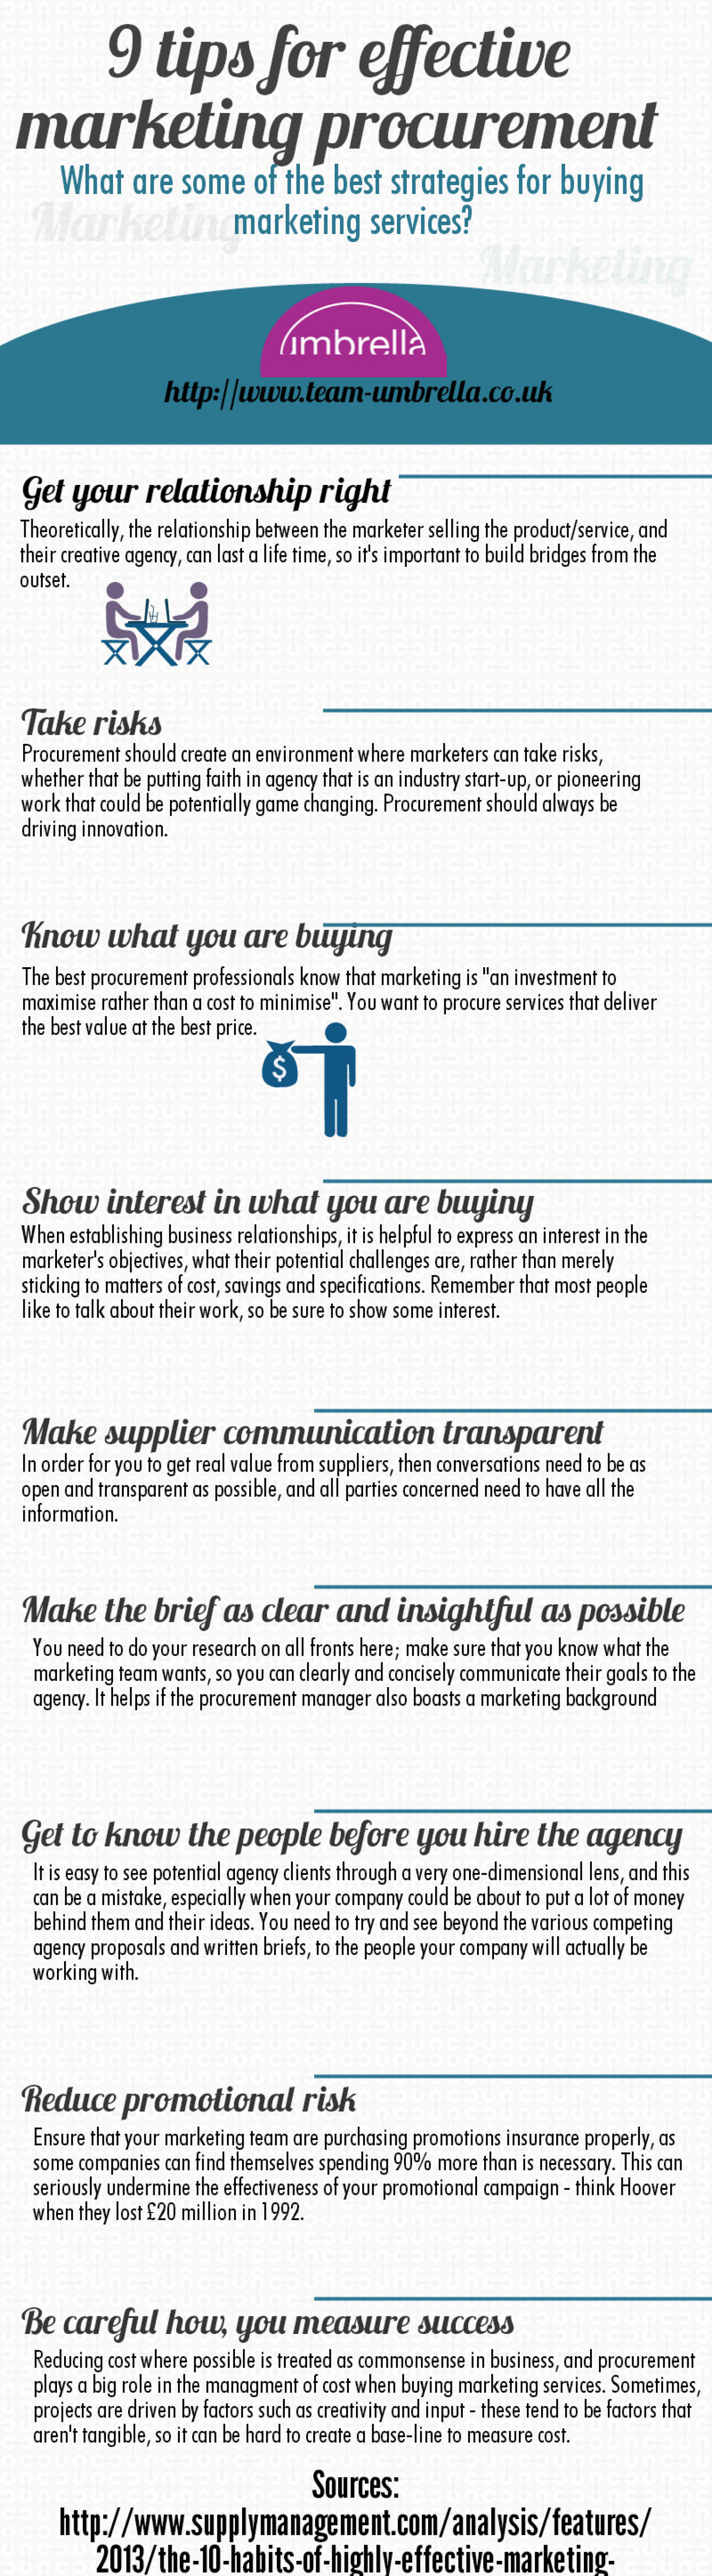 9 tips for marketing procurement  Infographic